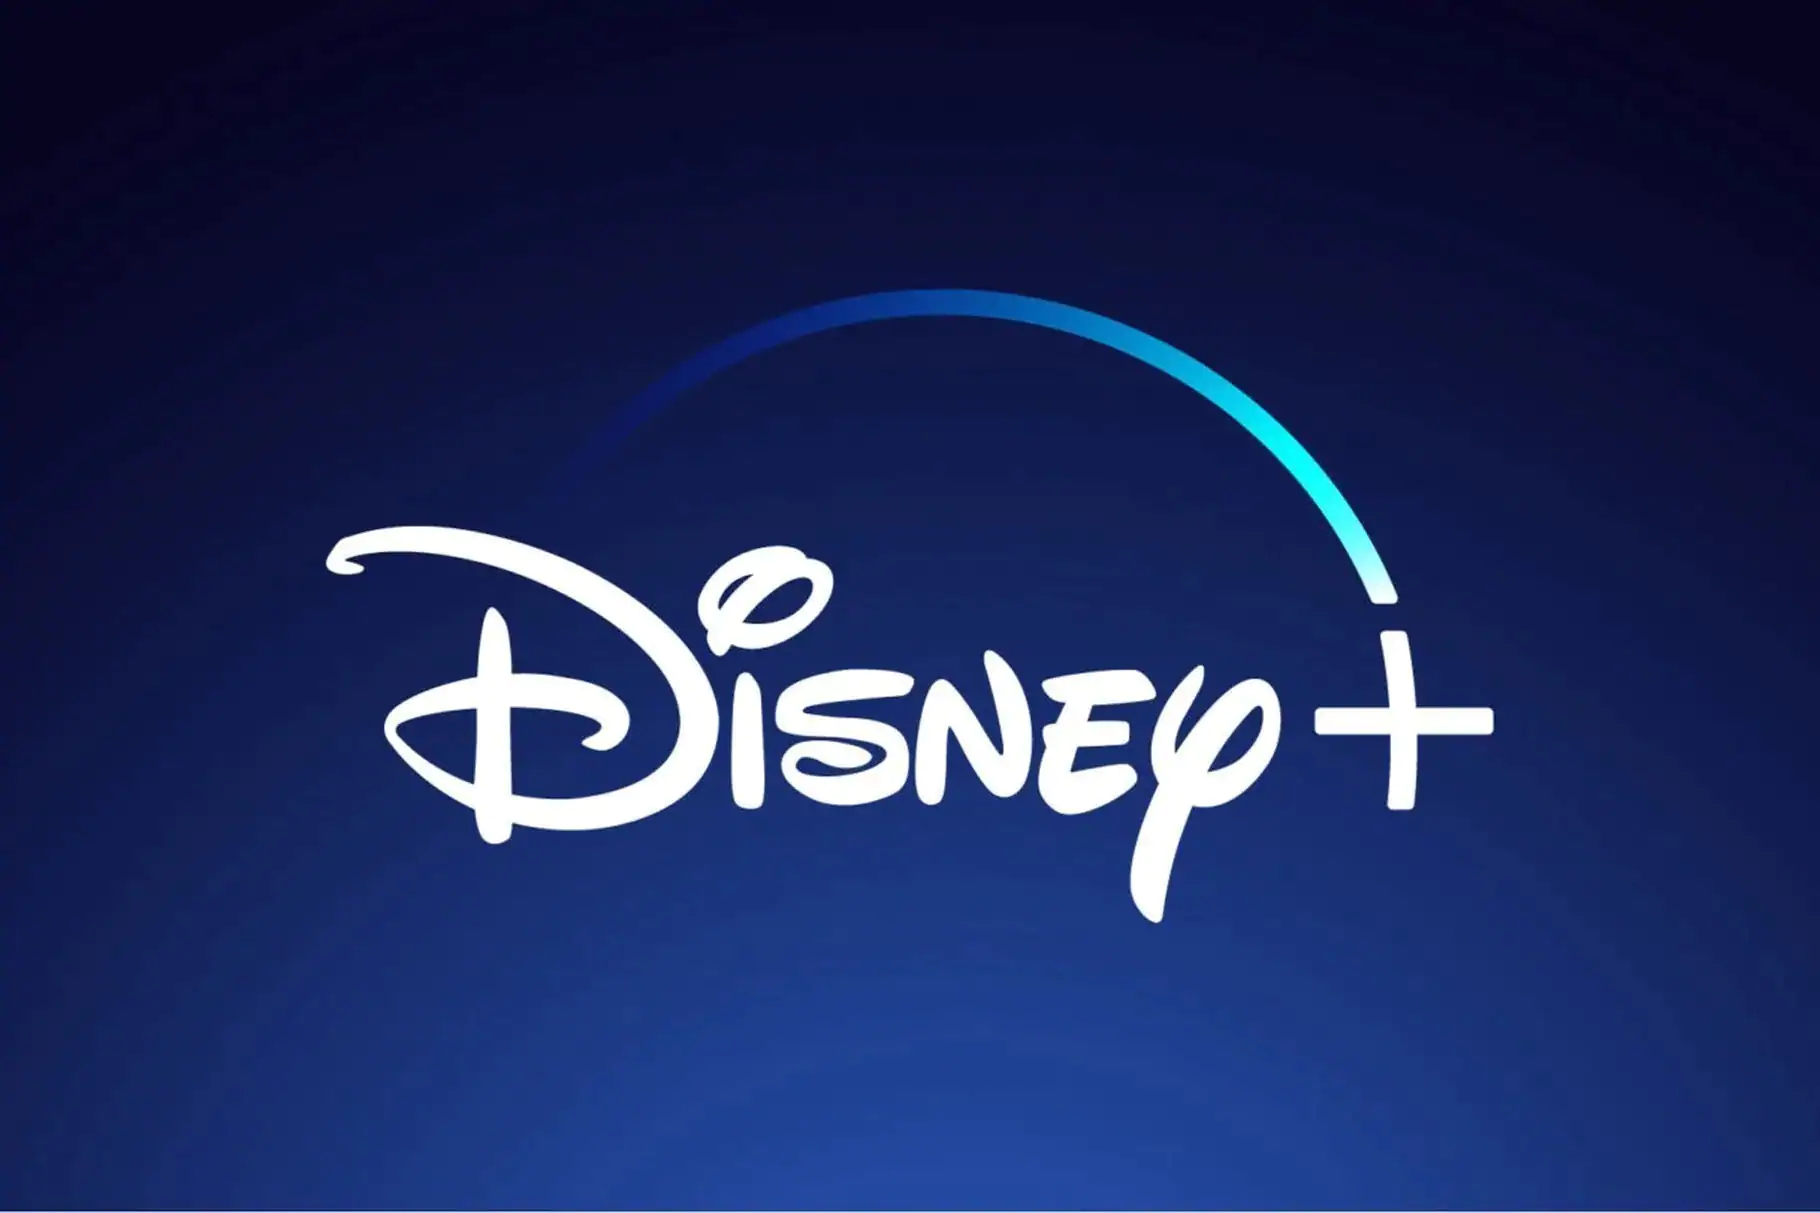 disney logo and product assets dtci media disney logo and product assets dtci